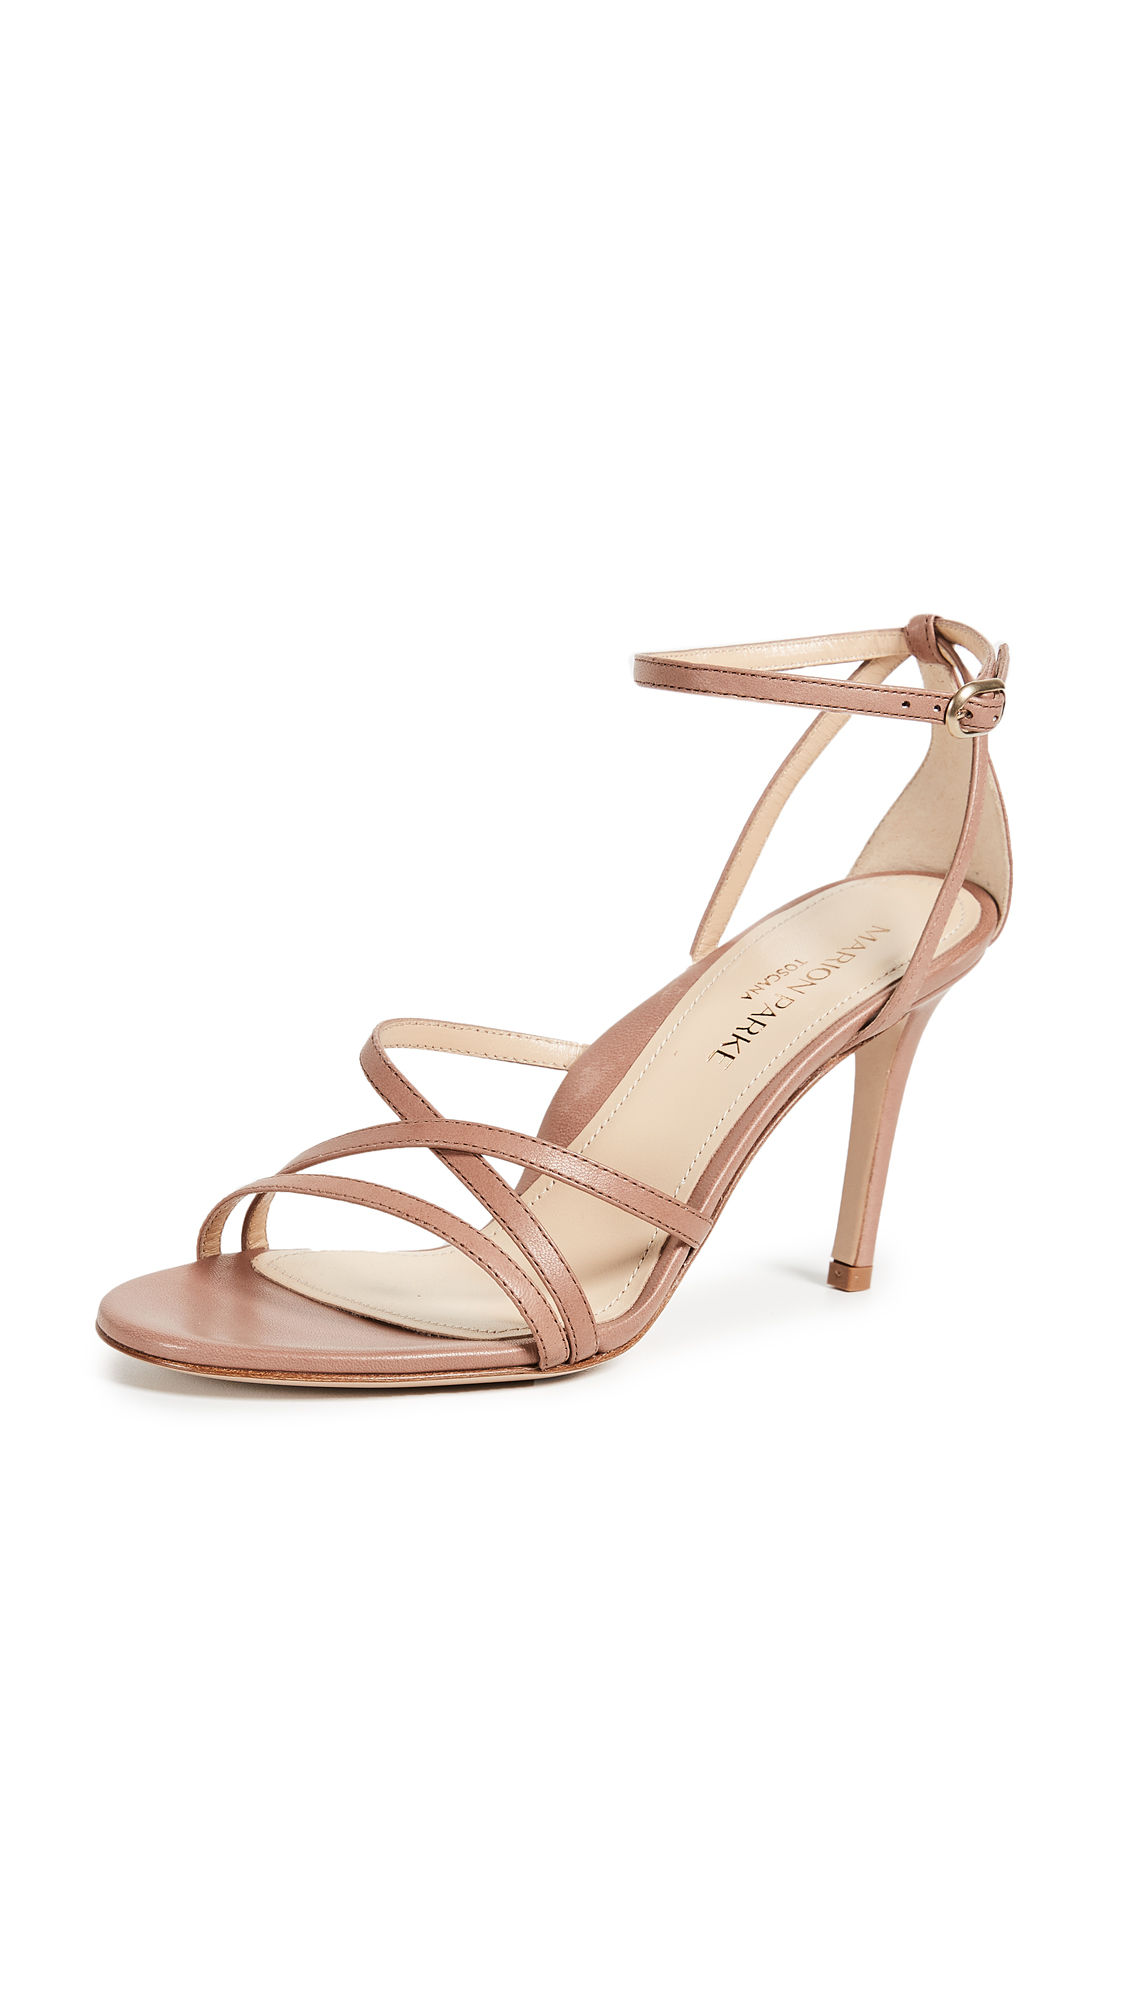 Marion Parke Lillian Sandals